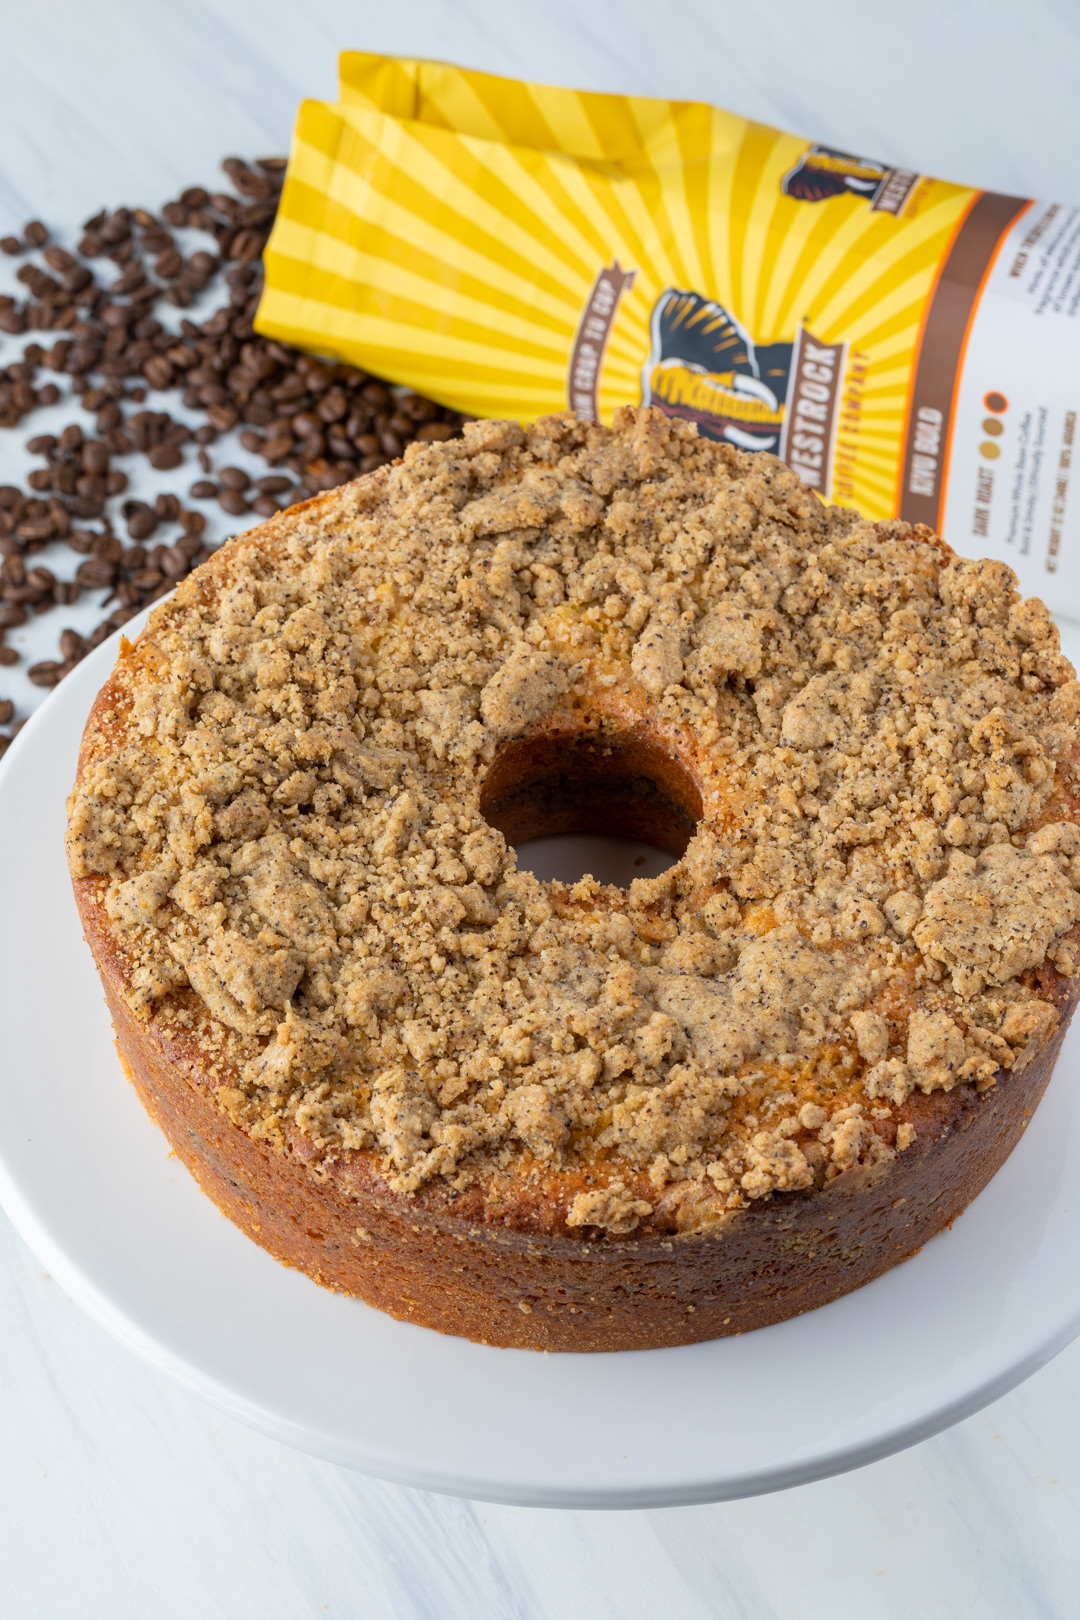 Coffee Cake recipe with Coffee Swirl, Coffee Streusel Crumble, Coffee Glaze